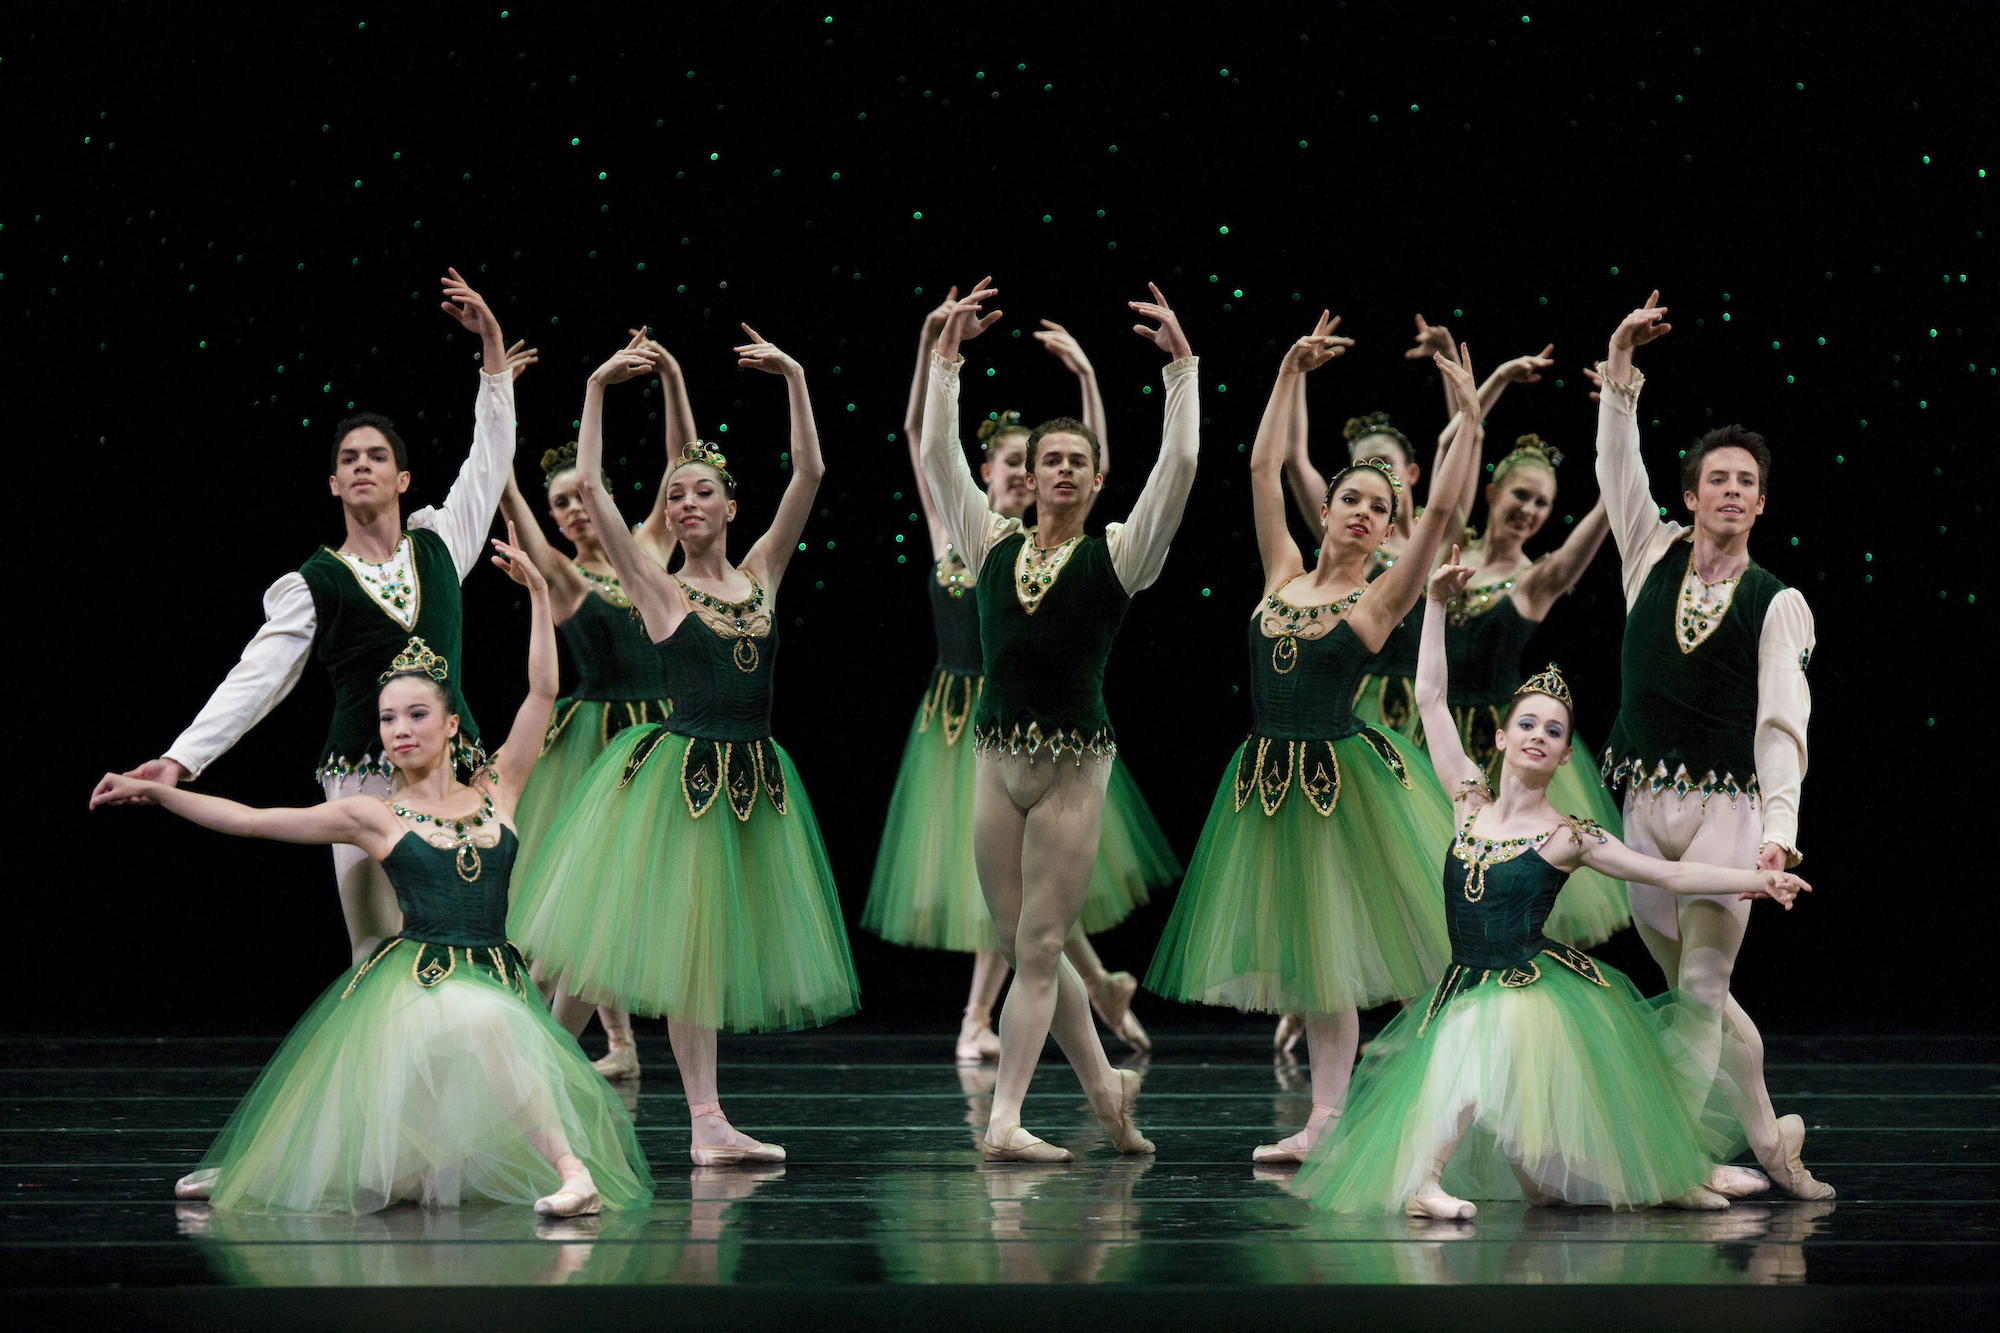 San Francisco Ballet in Balanchine's Emeralds. (Choreography by George Balanchine © The Balanchine Trust; Photo © Erik Tomasson)